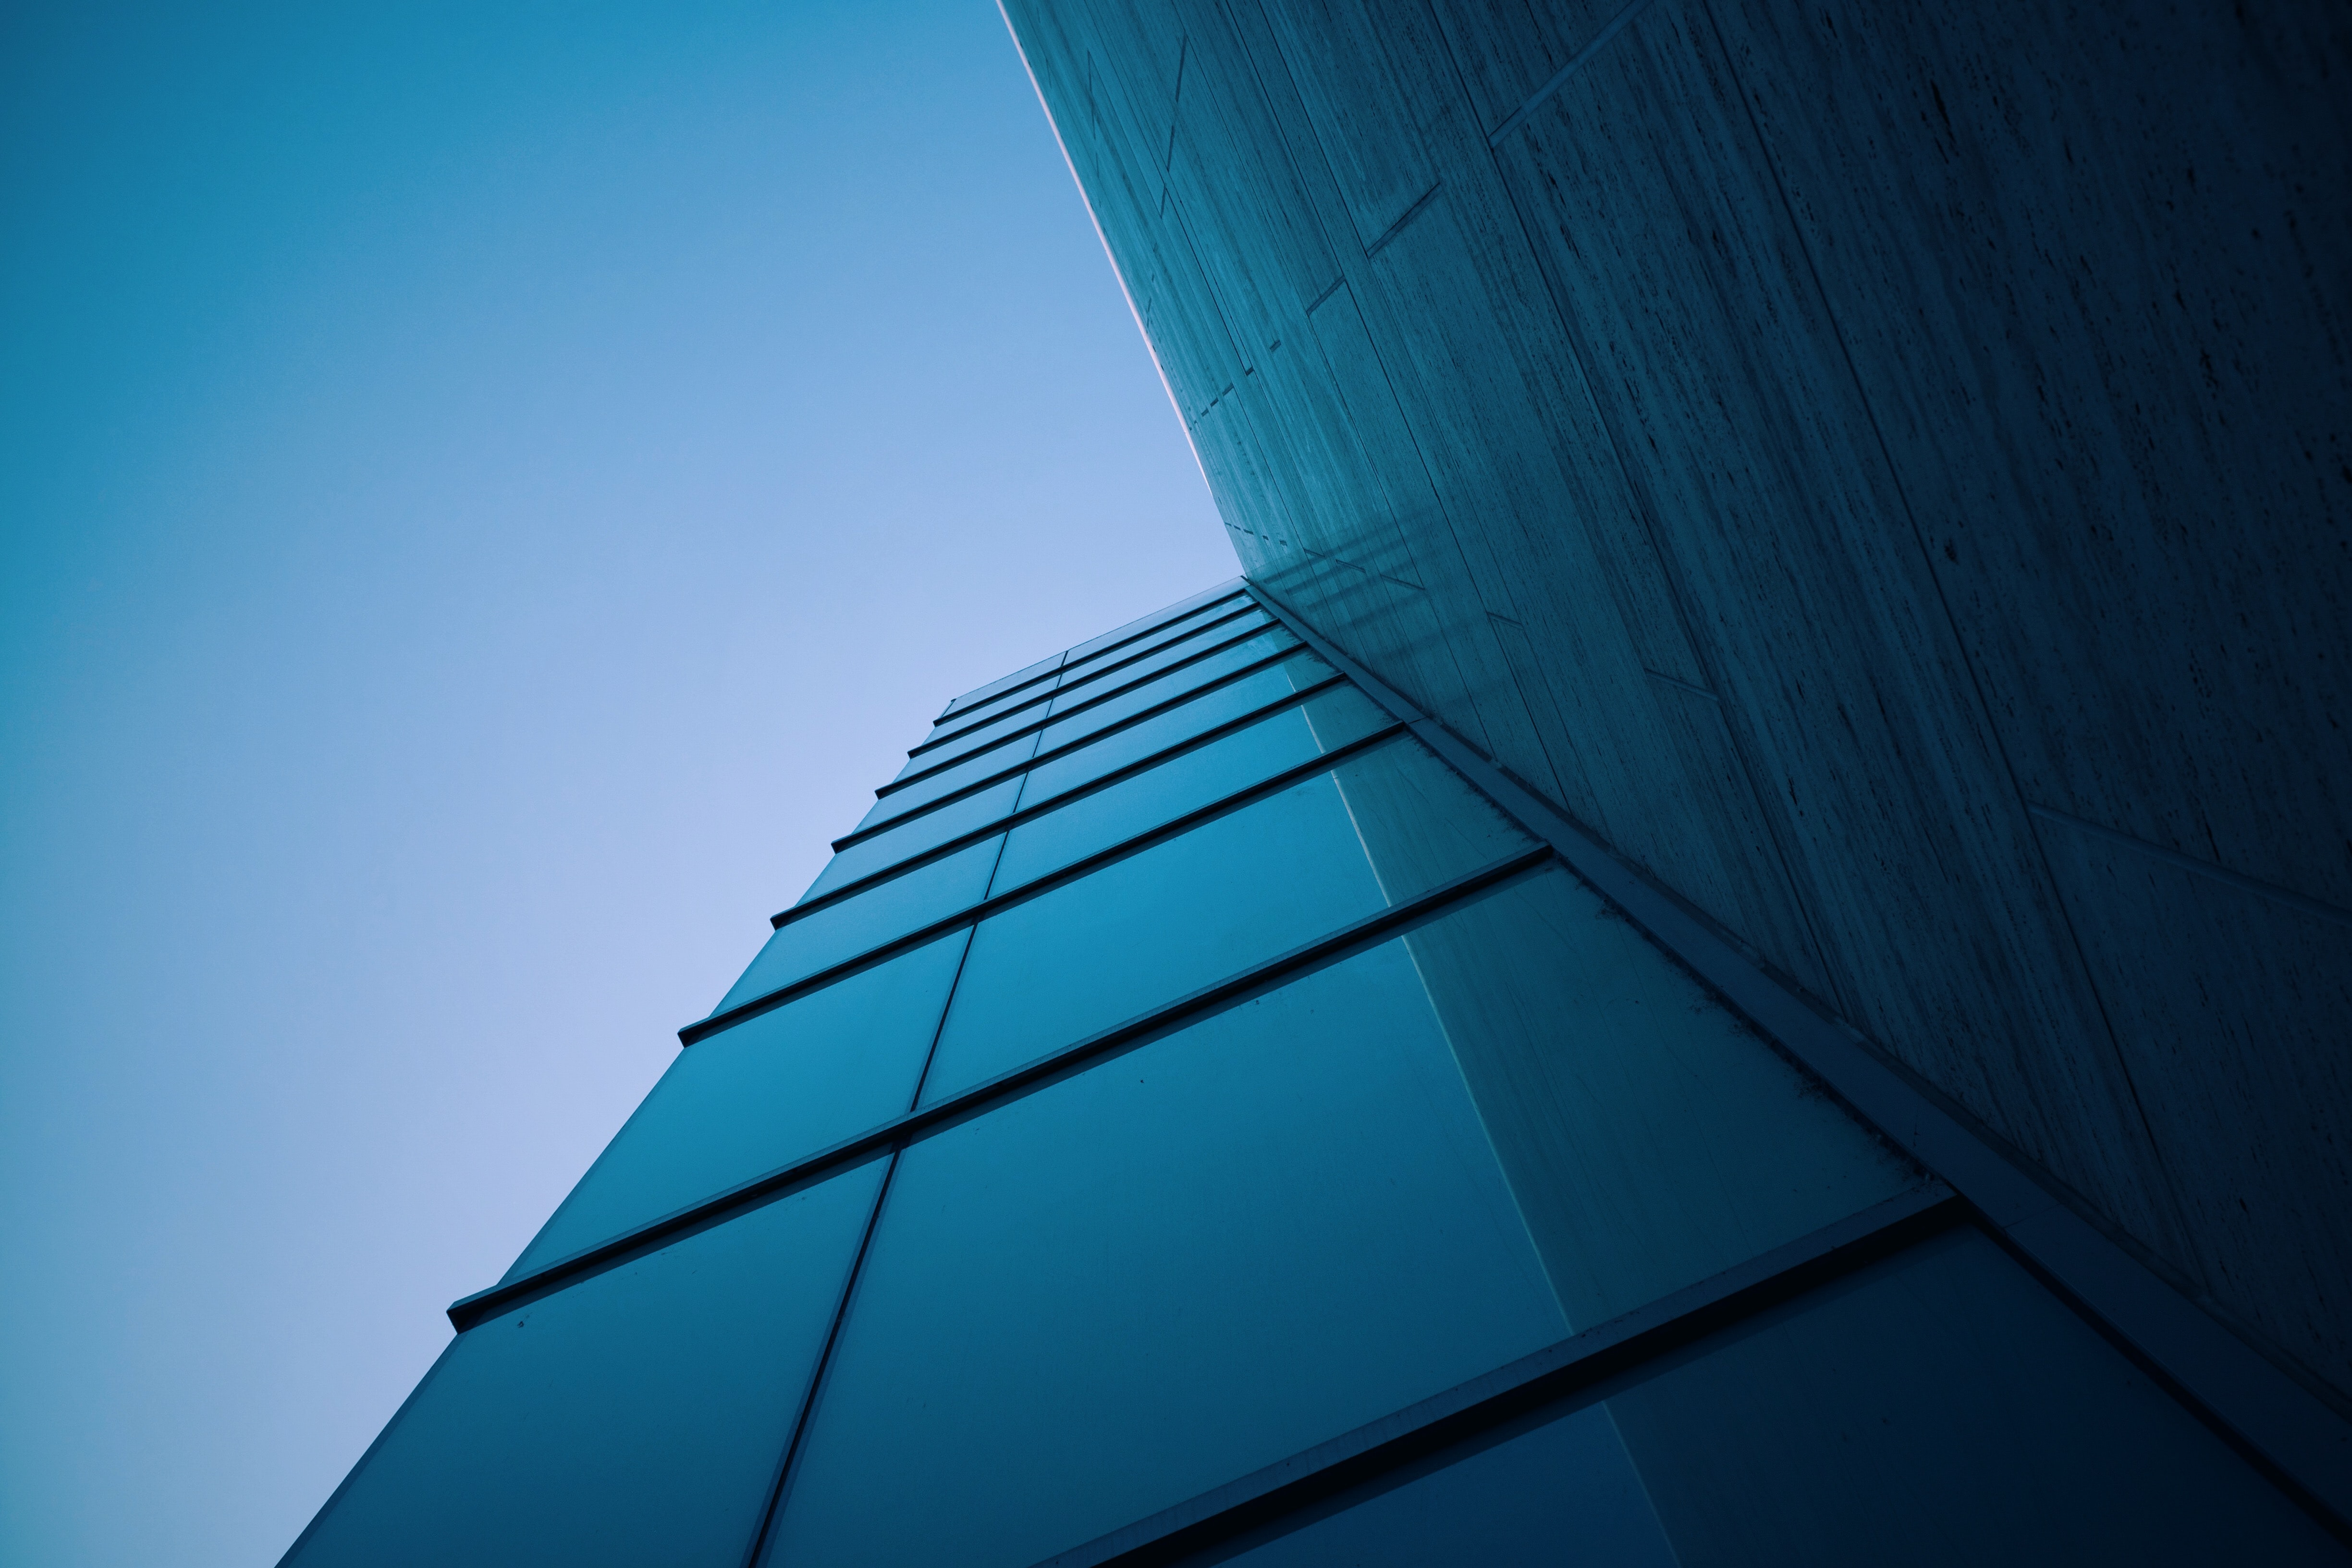 A low-angle shot of a corner in a facade of a modern office building